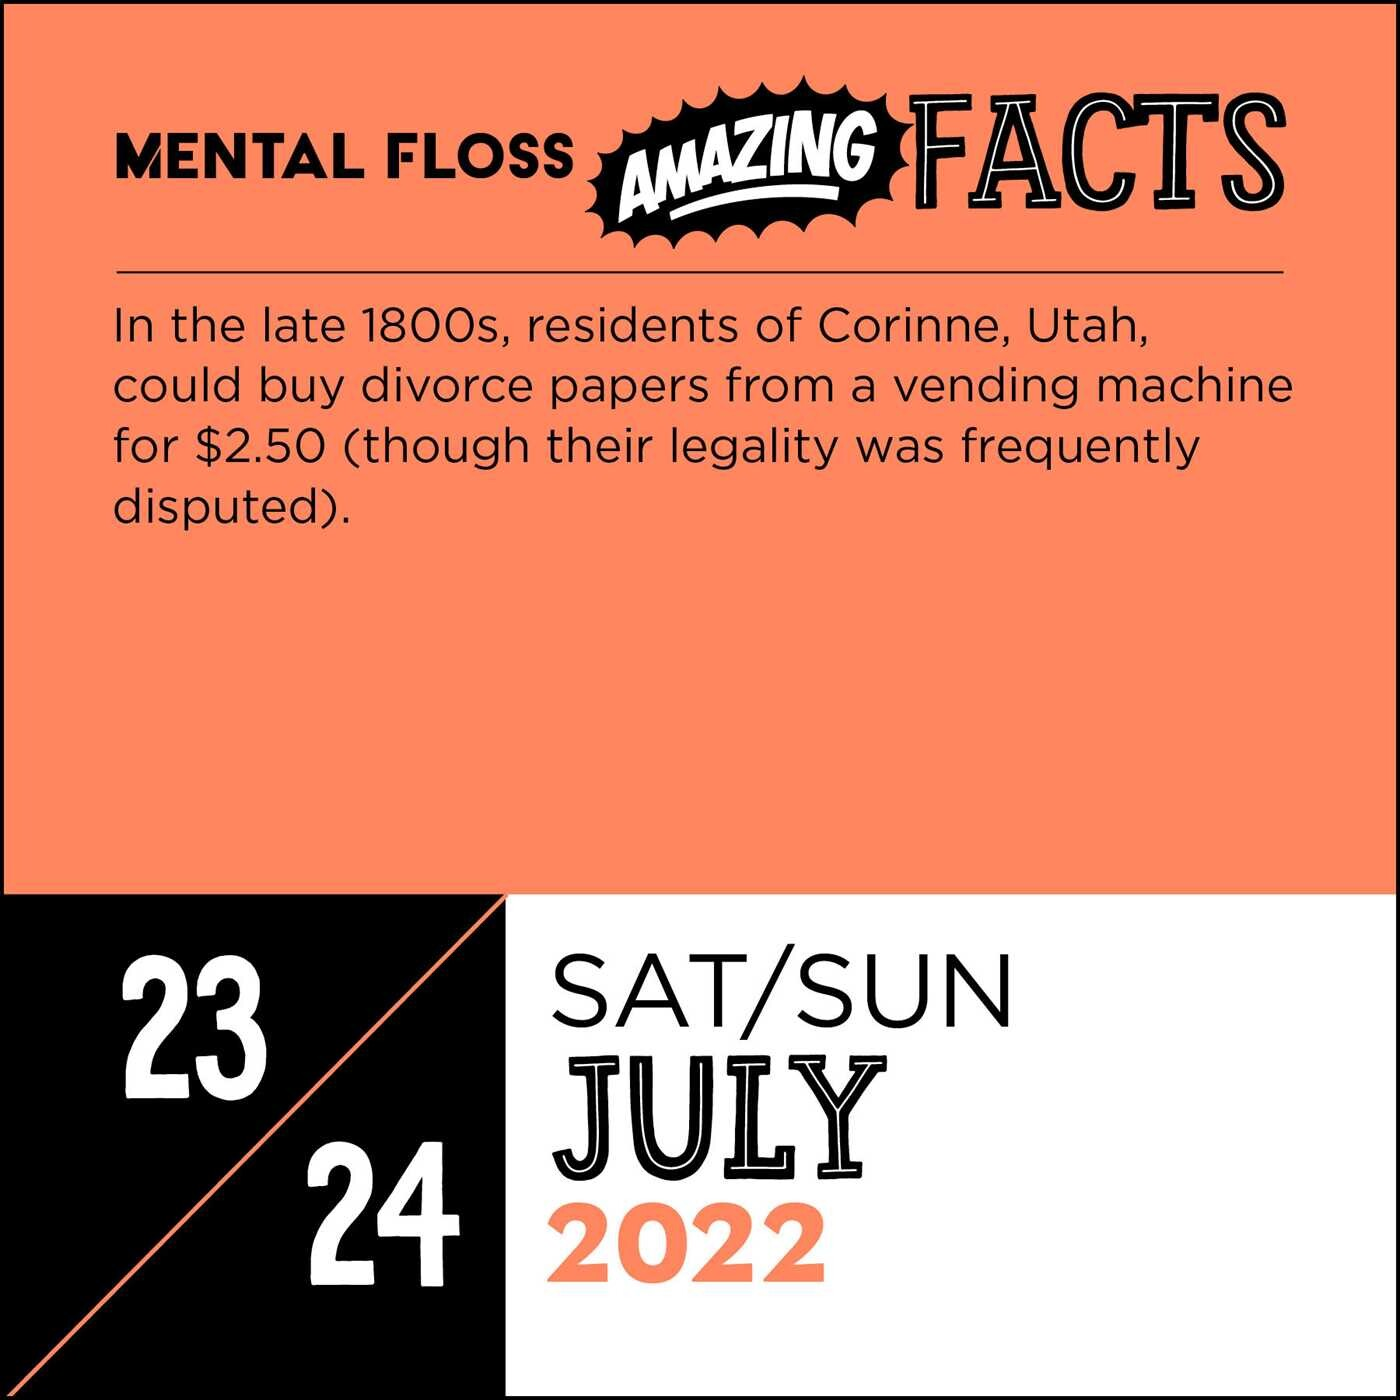 Amazing Calendar 2022.Amazing Facts From Mental Floss 2022 Day To Day Calendar Book Summary Video Official Publisher Page Simon Schuster